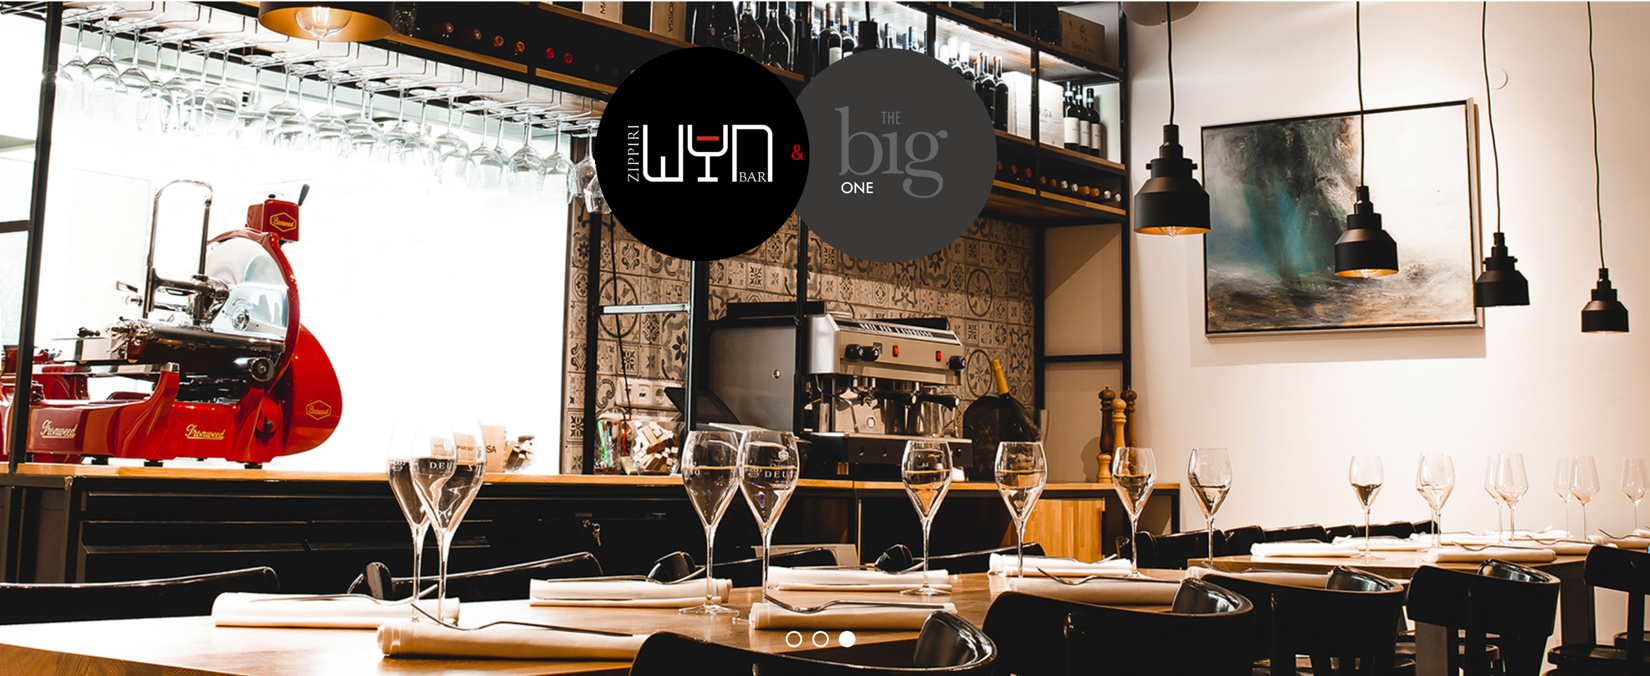 THE big ONE Tasting & Menu in der Zippiri Weinbar